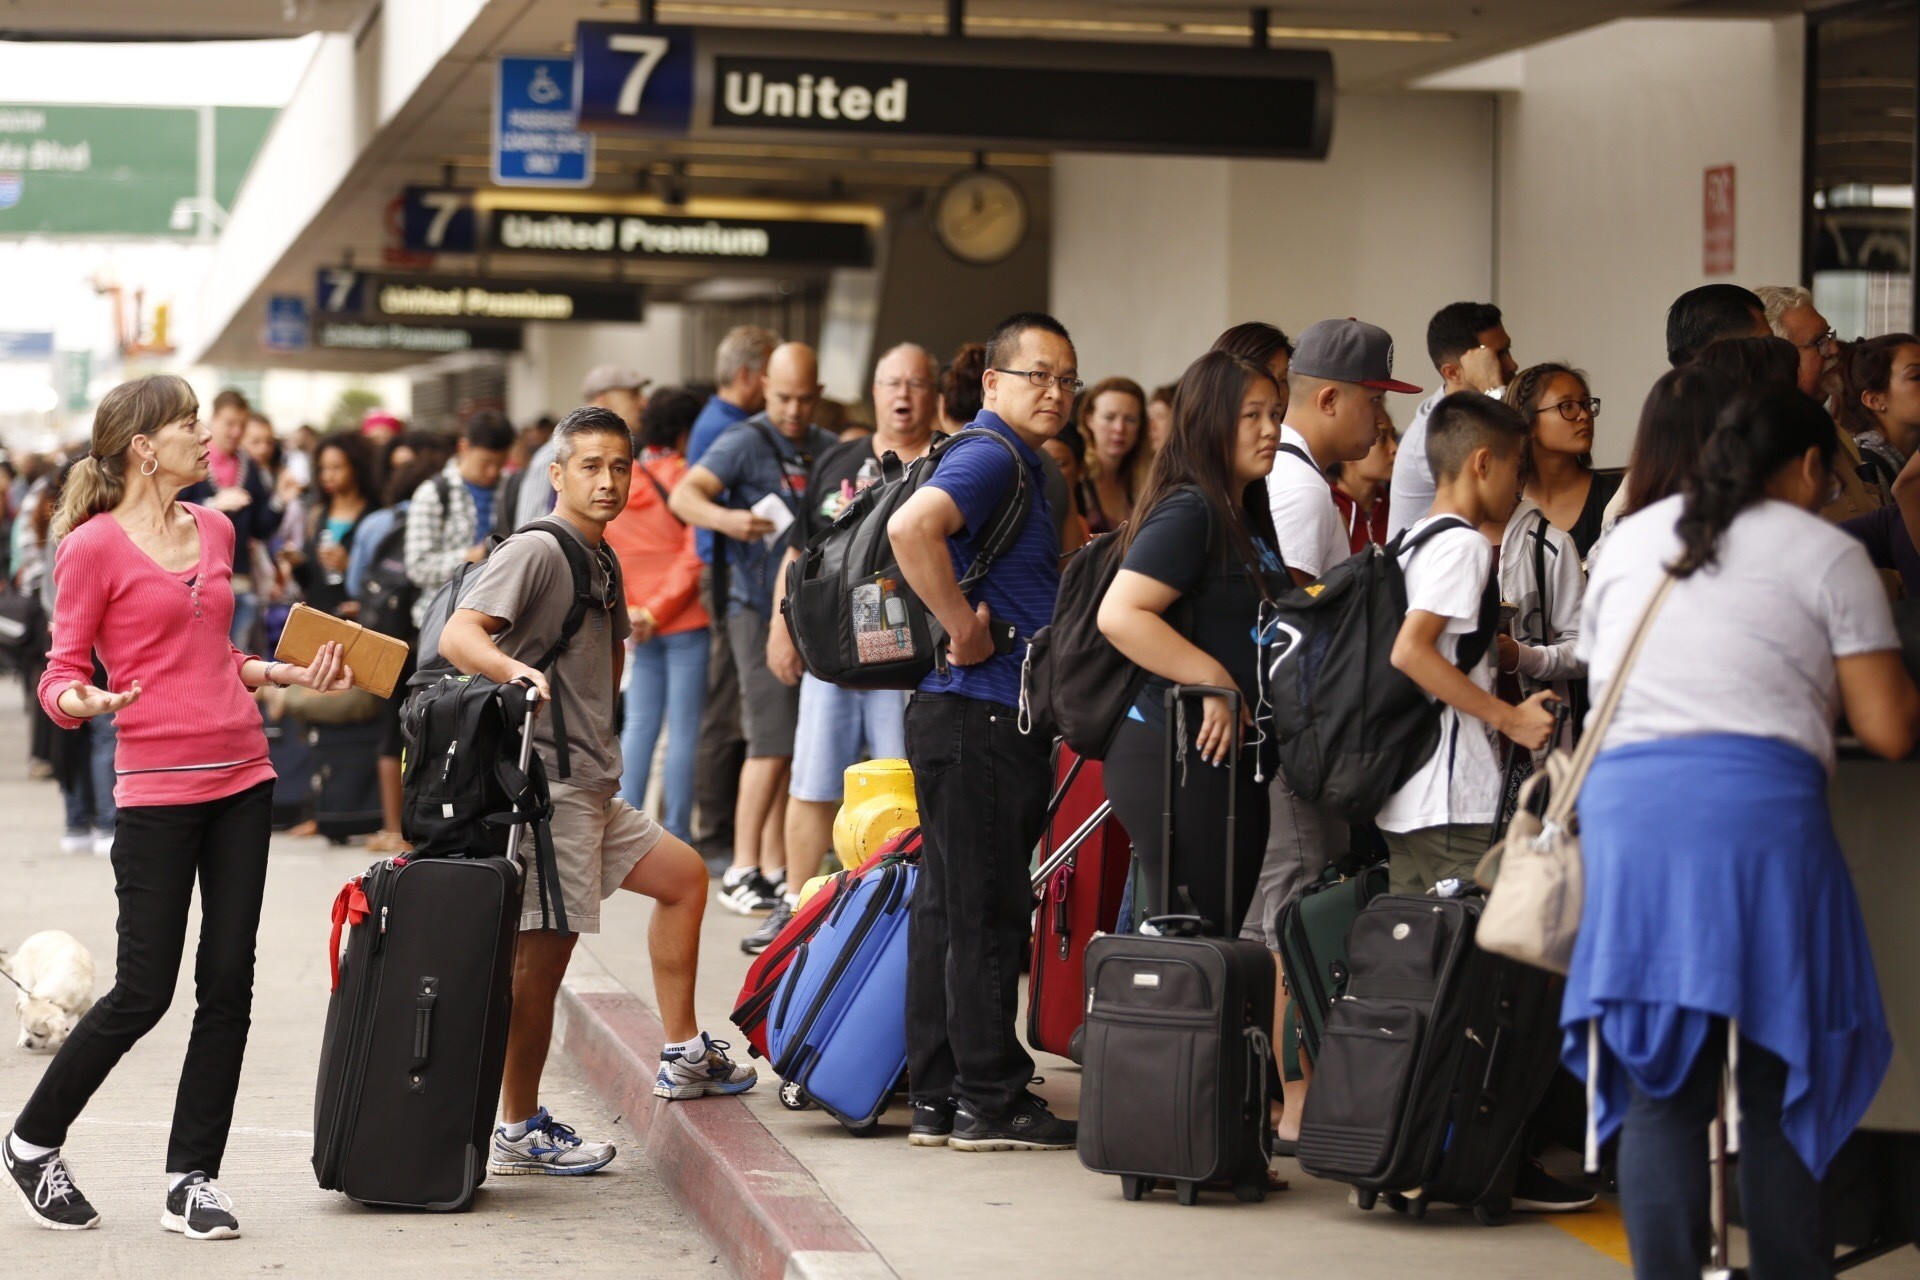 United Airlines Resumes Flights After IT Issue   ABC News CBS New York   CBS Local United Airways likely to resume operations soon